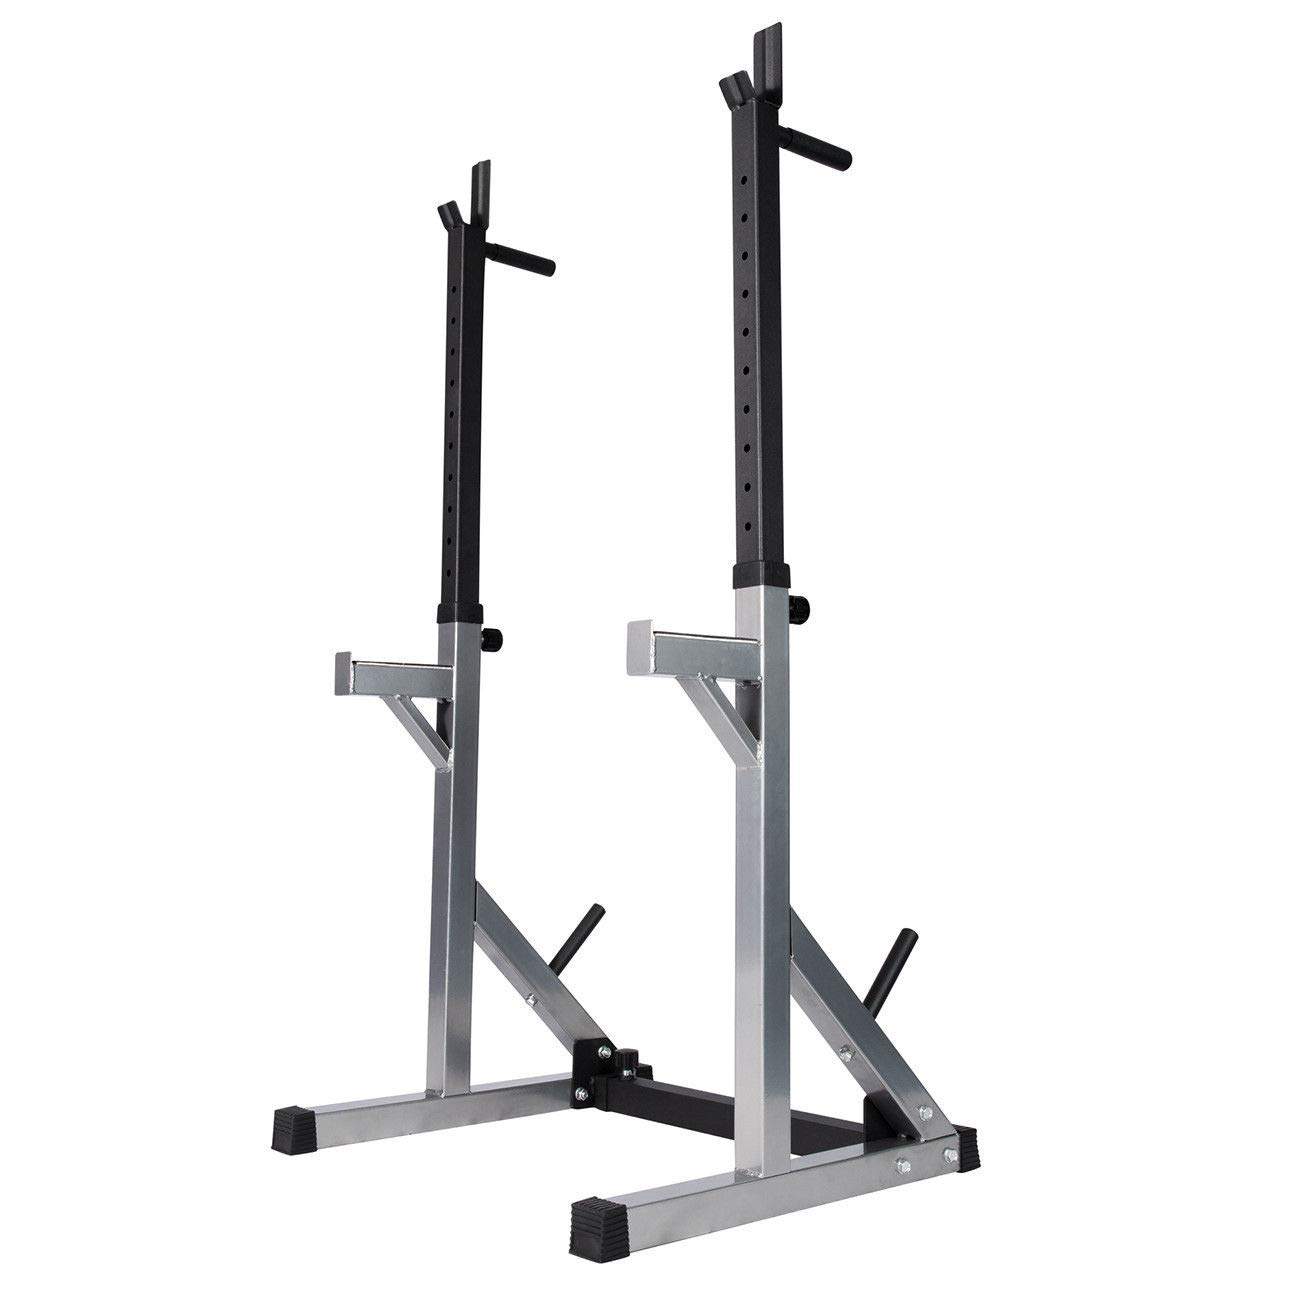 TimmyHouse Stand Weight Plate Rack Squat Rack Multifunction Barbell Bench Press Full Boday